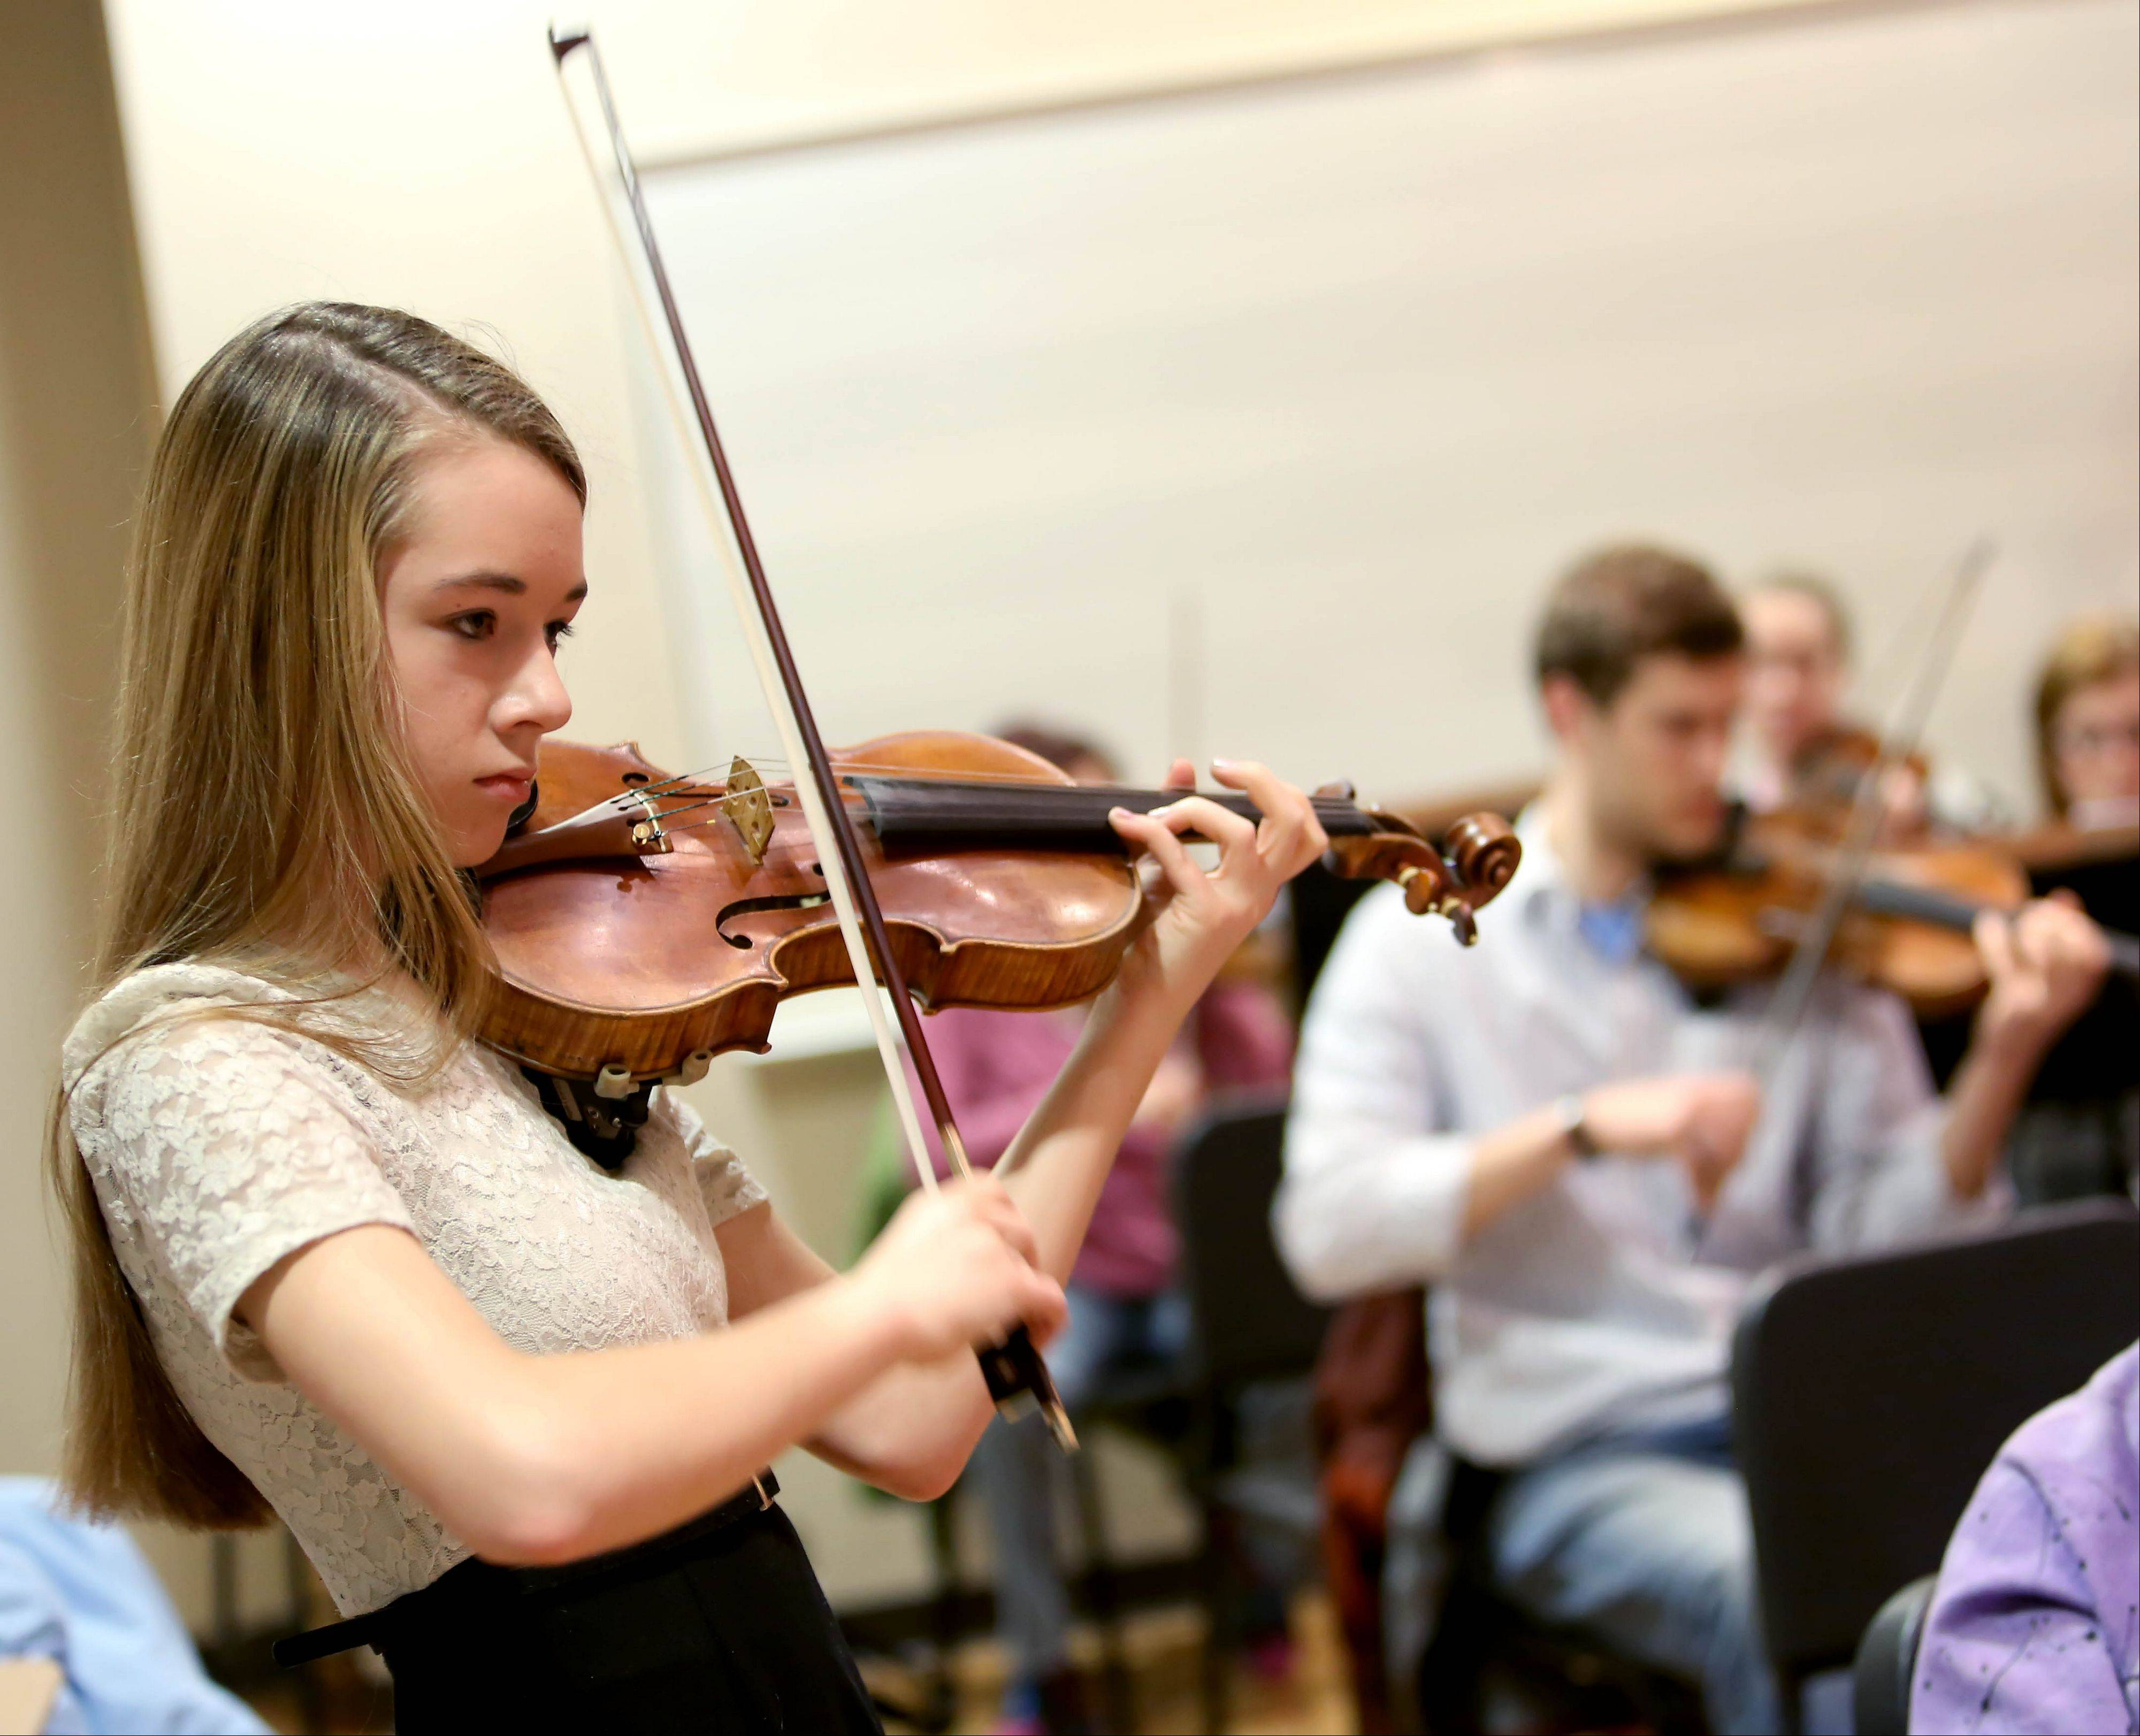 Serena Harnack of Glen Ellyn, 14, practices her solo with the DuPage Symphony Orchestra at Wentz Hall in Naperville. She performed with the orchestra May 16 after winning a student competition.